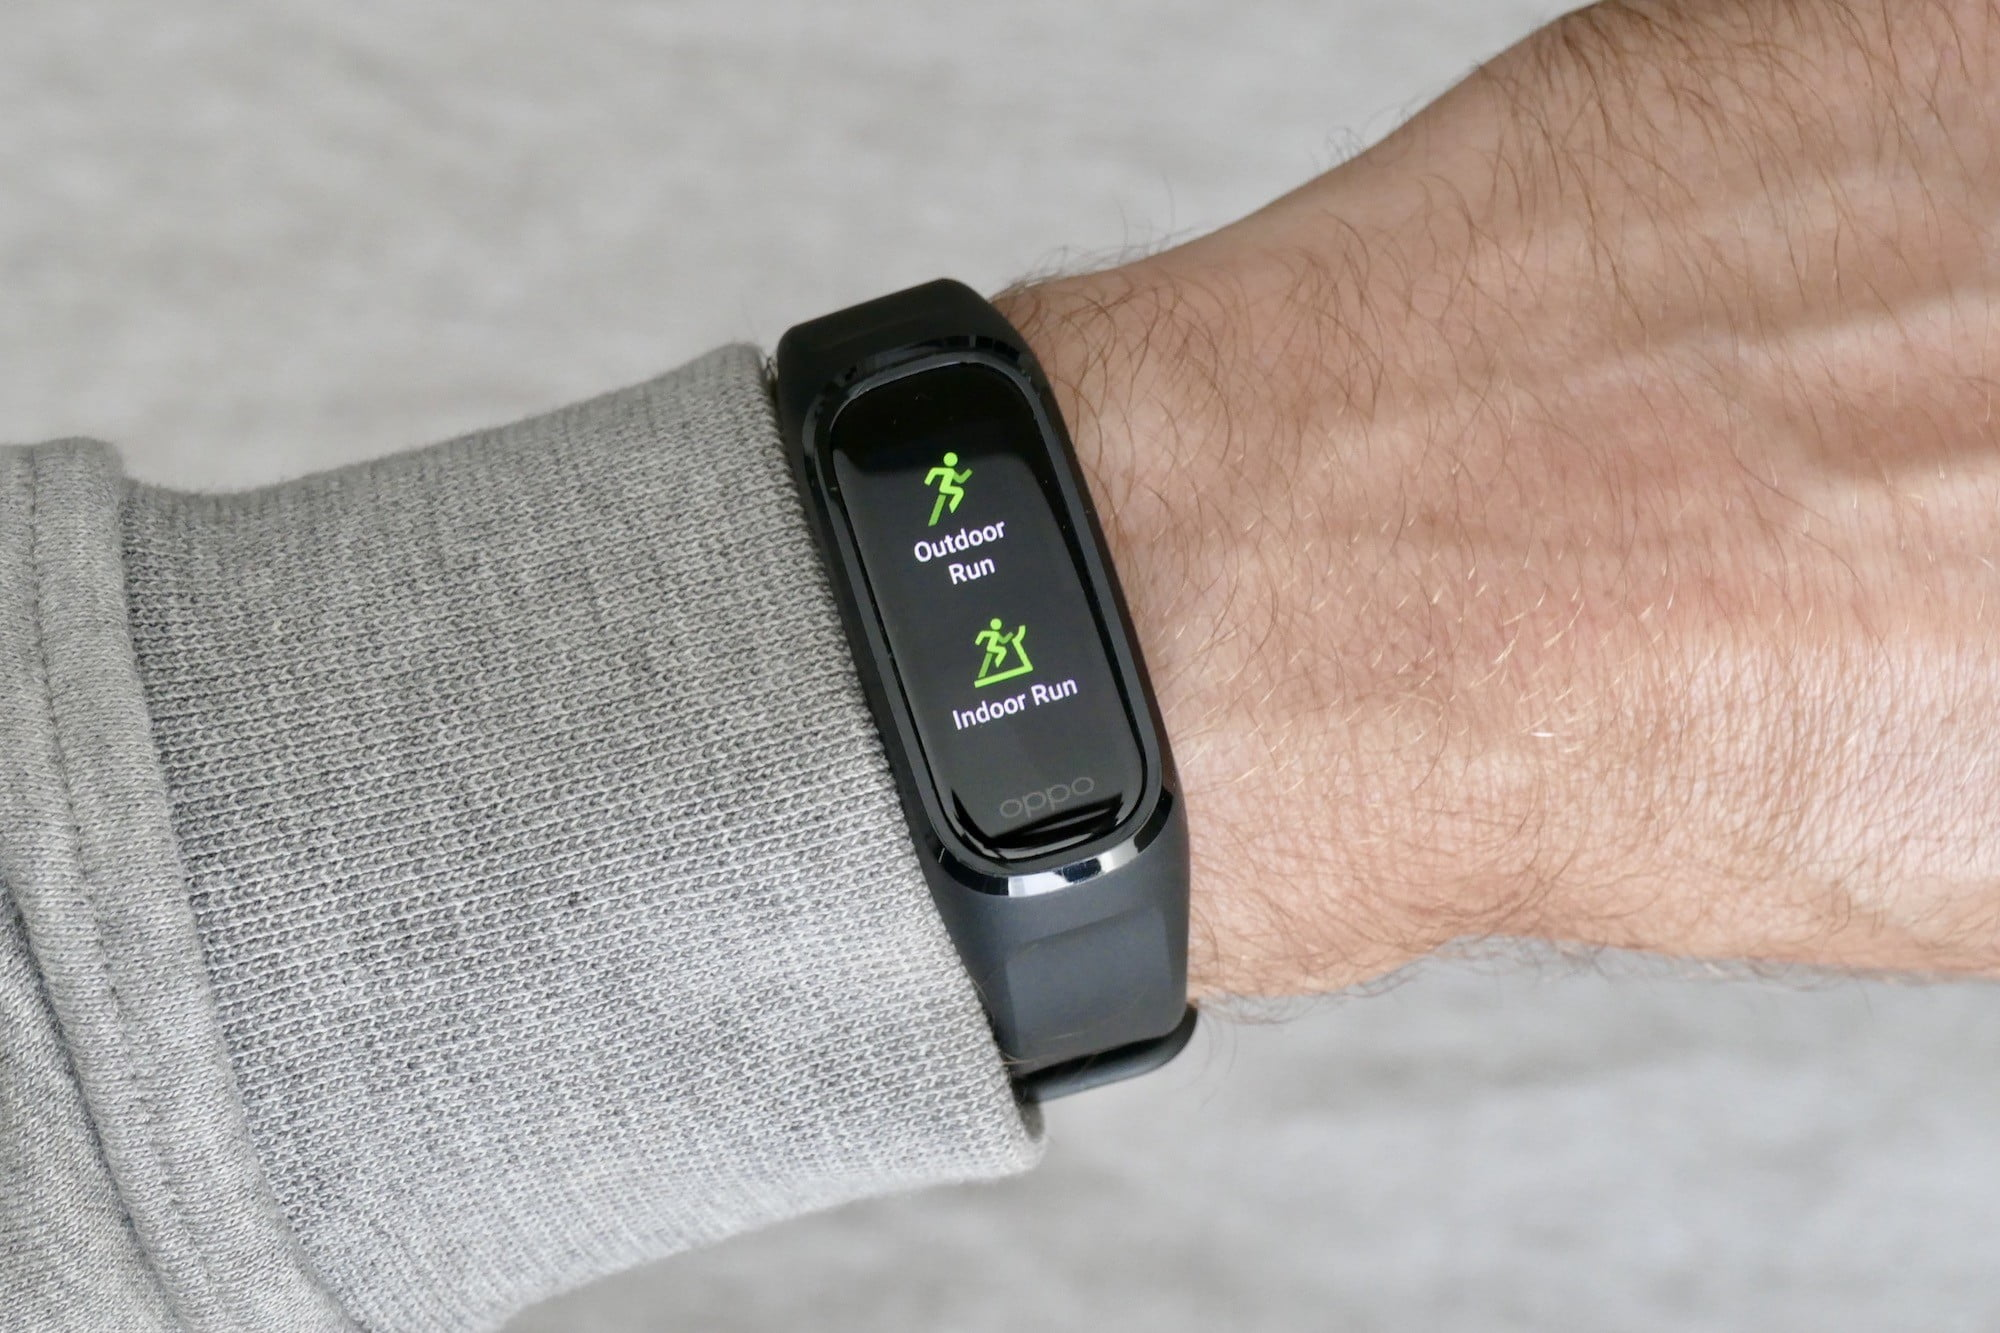 Oppo Band workout screen